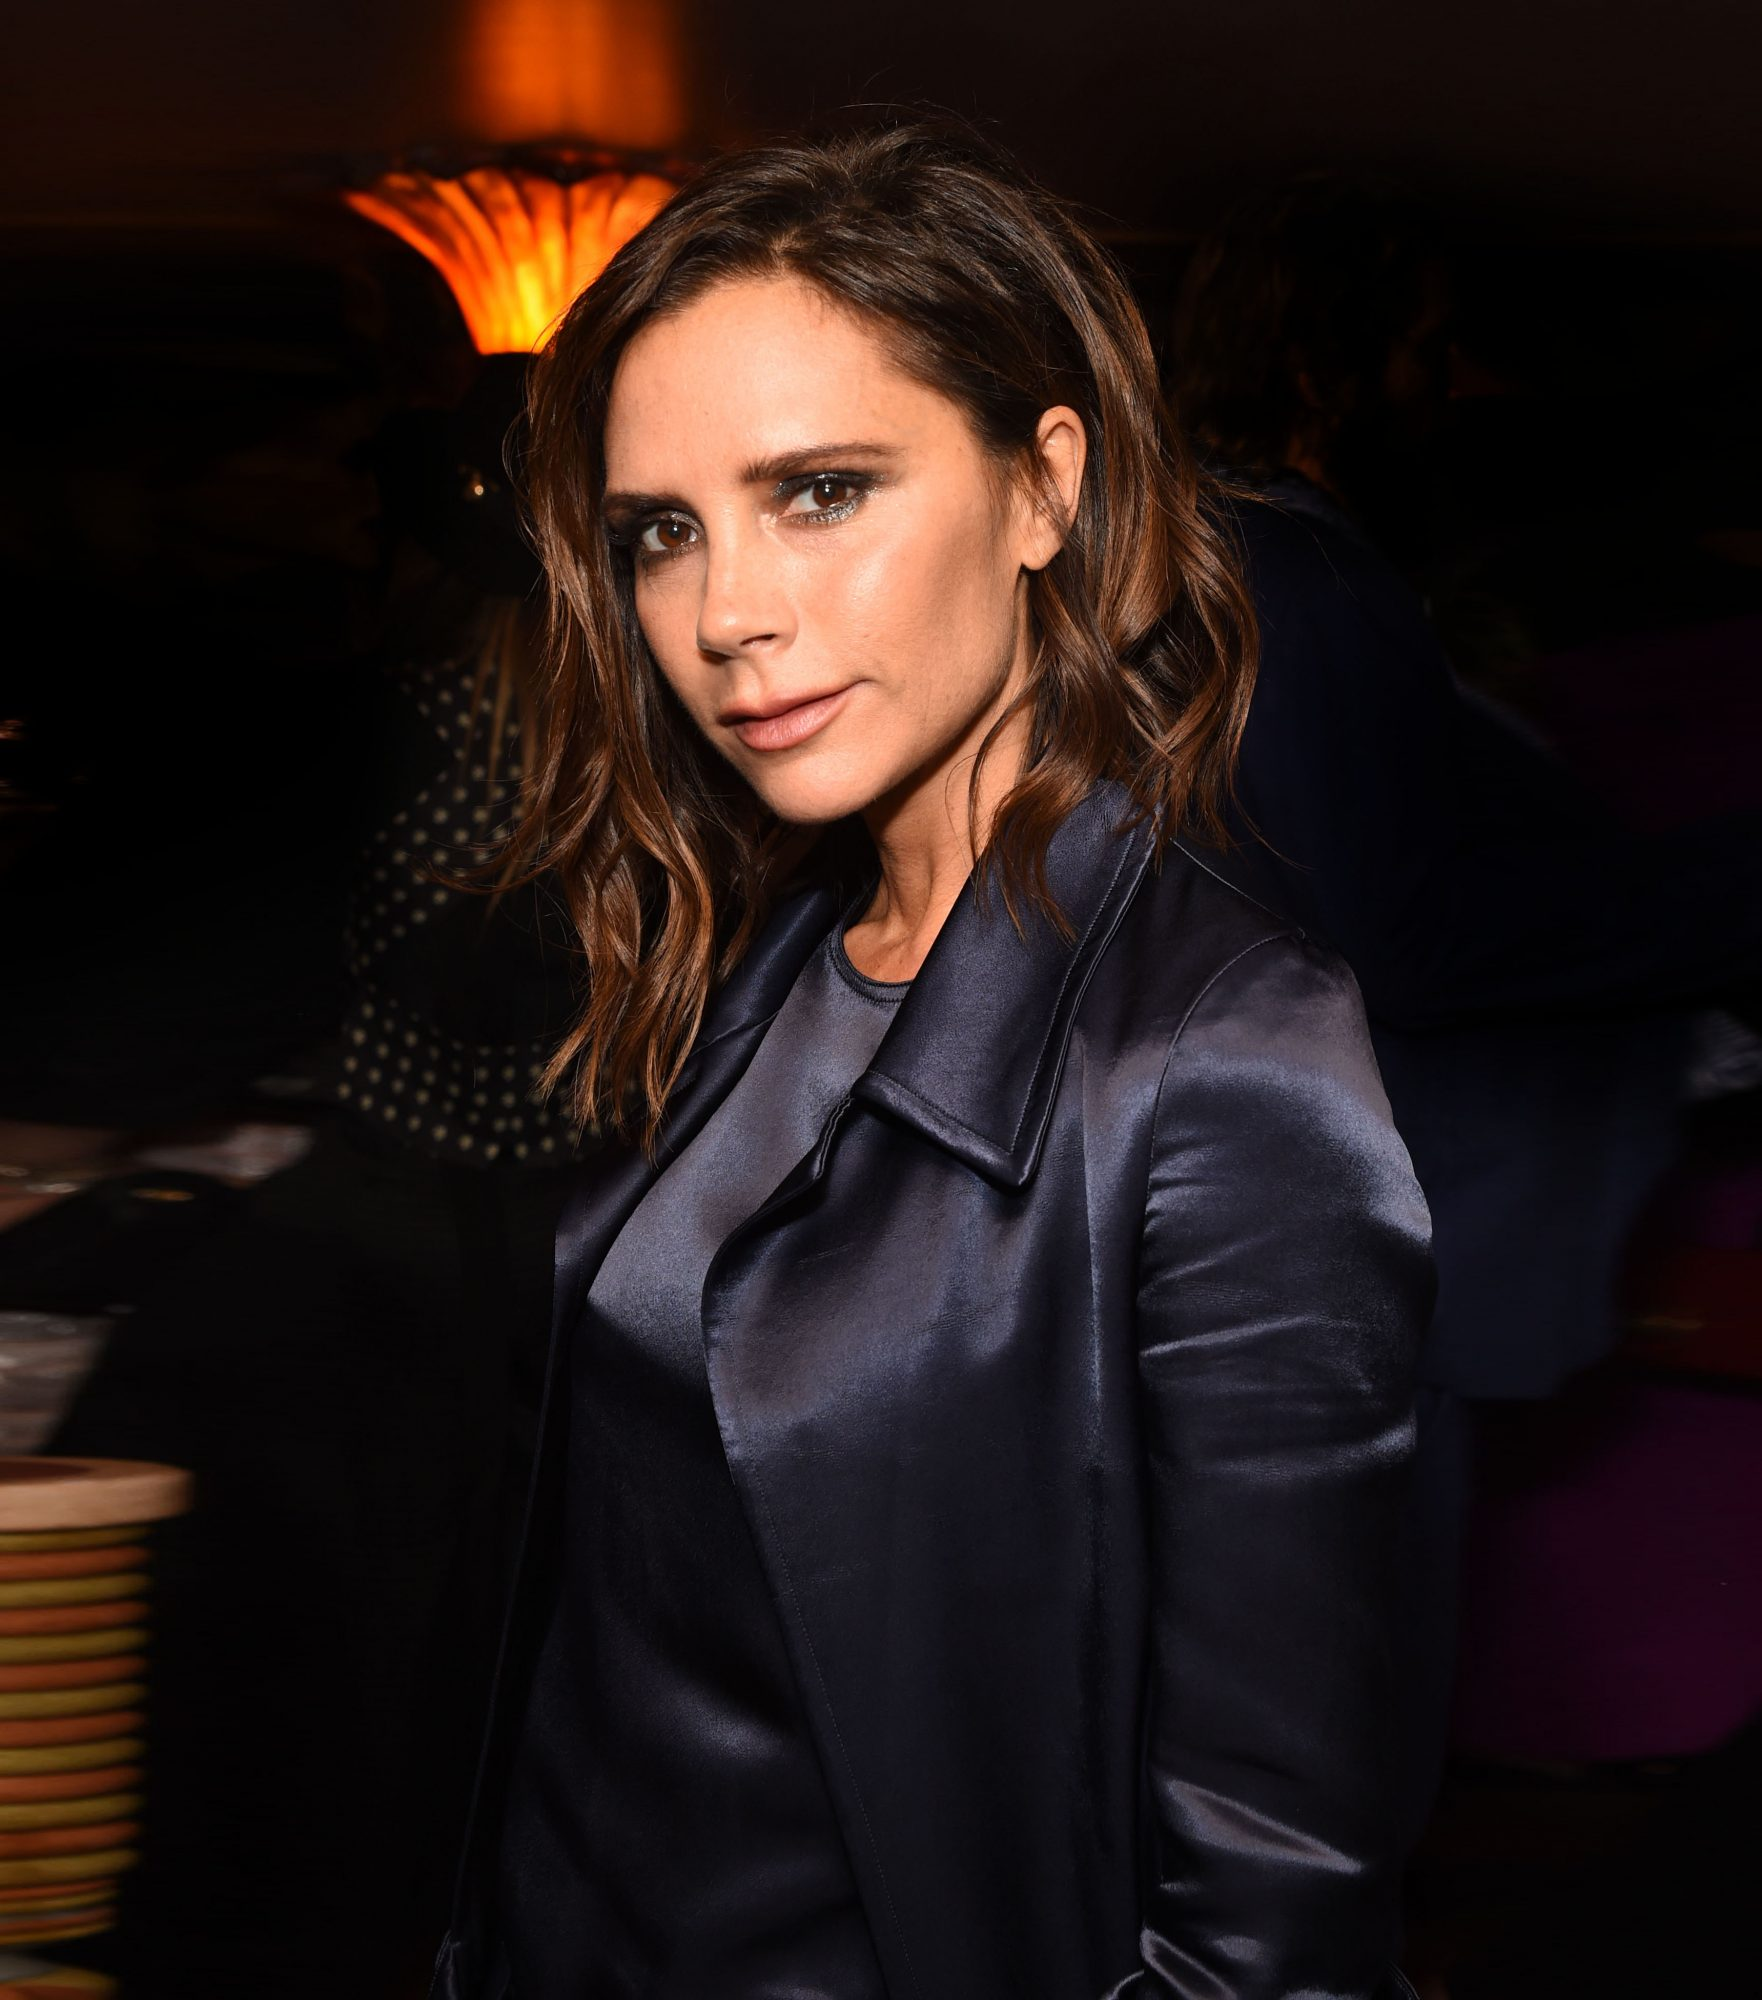 Victoria Beckham Is Obsessed with This $48 Hydrating Algae Body Oil